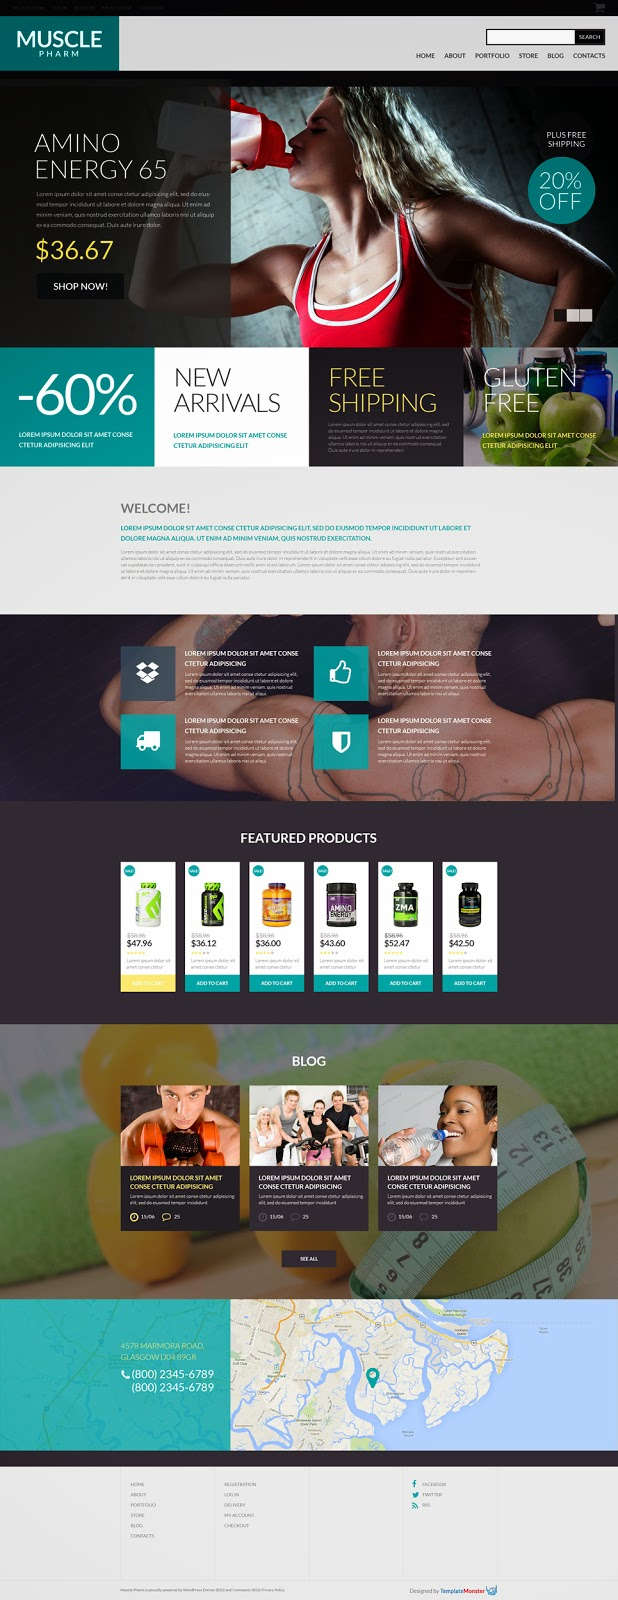 Download Free WooCommerce Theme for Drug Store